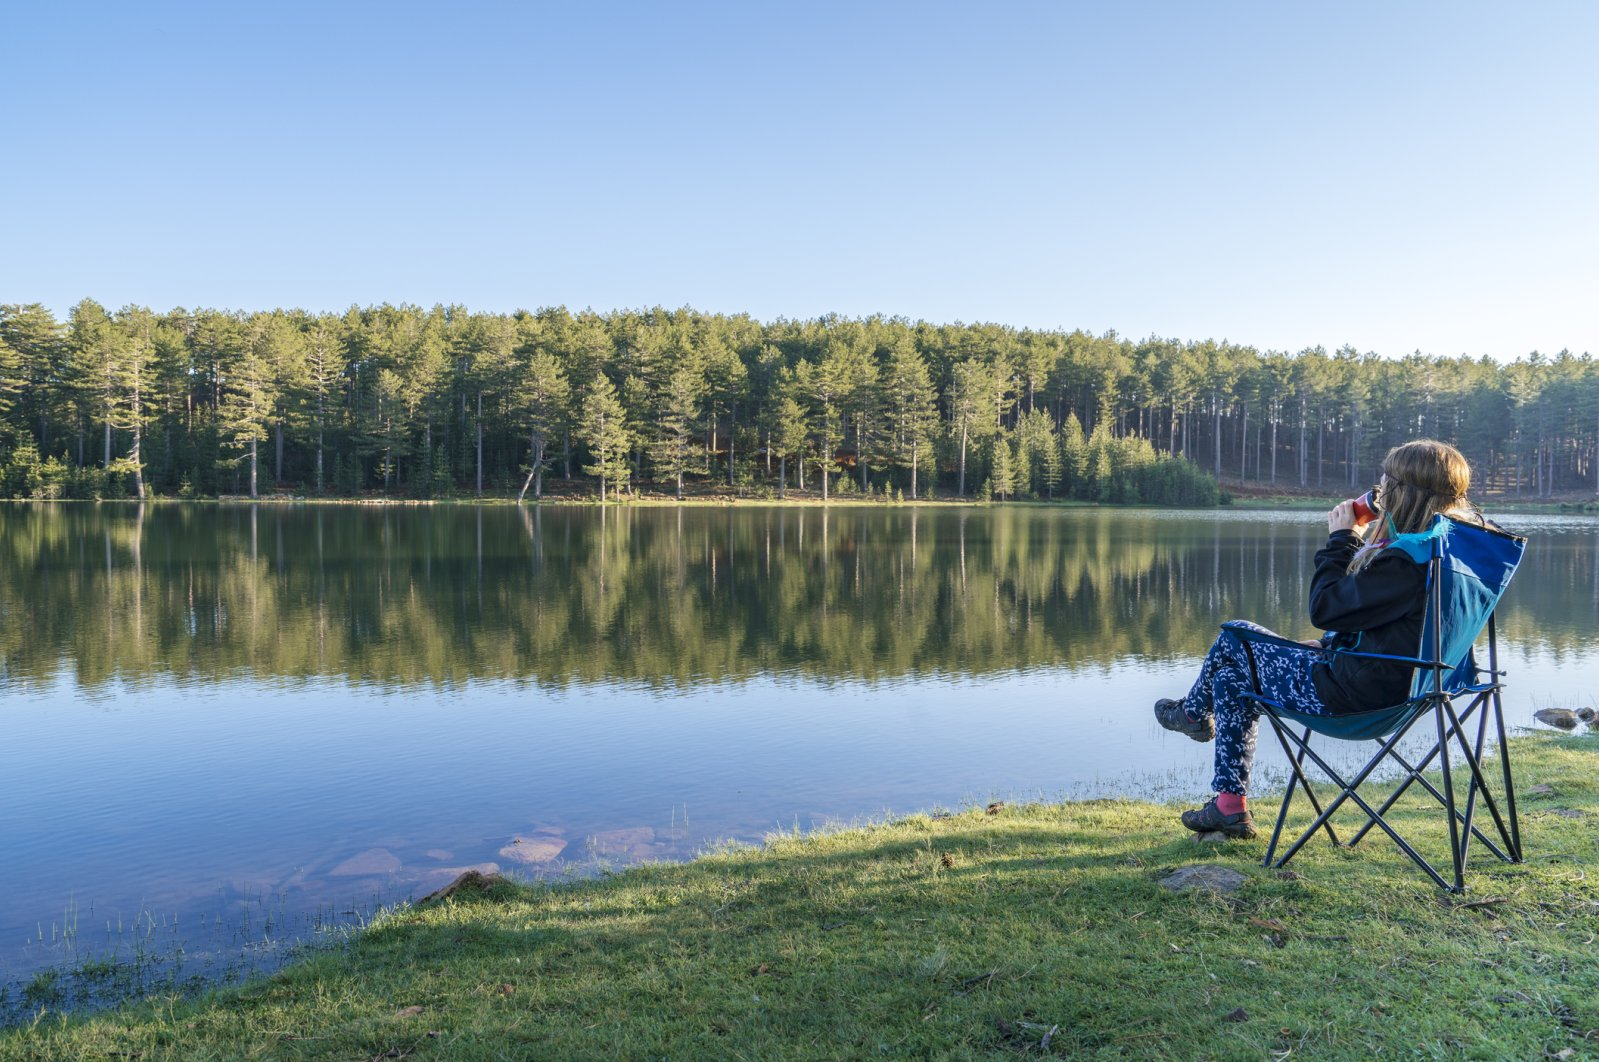 Tea, trees and tranquility, the three T's of camping out in nature. (iStock Photo)